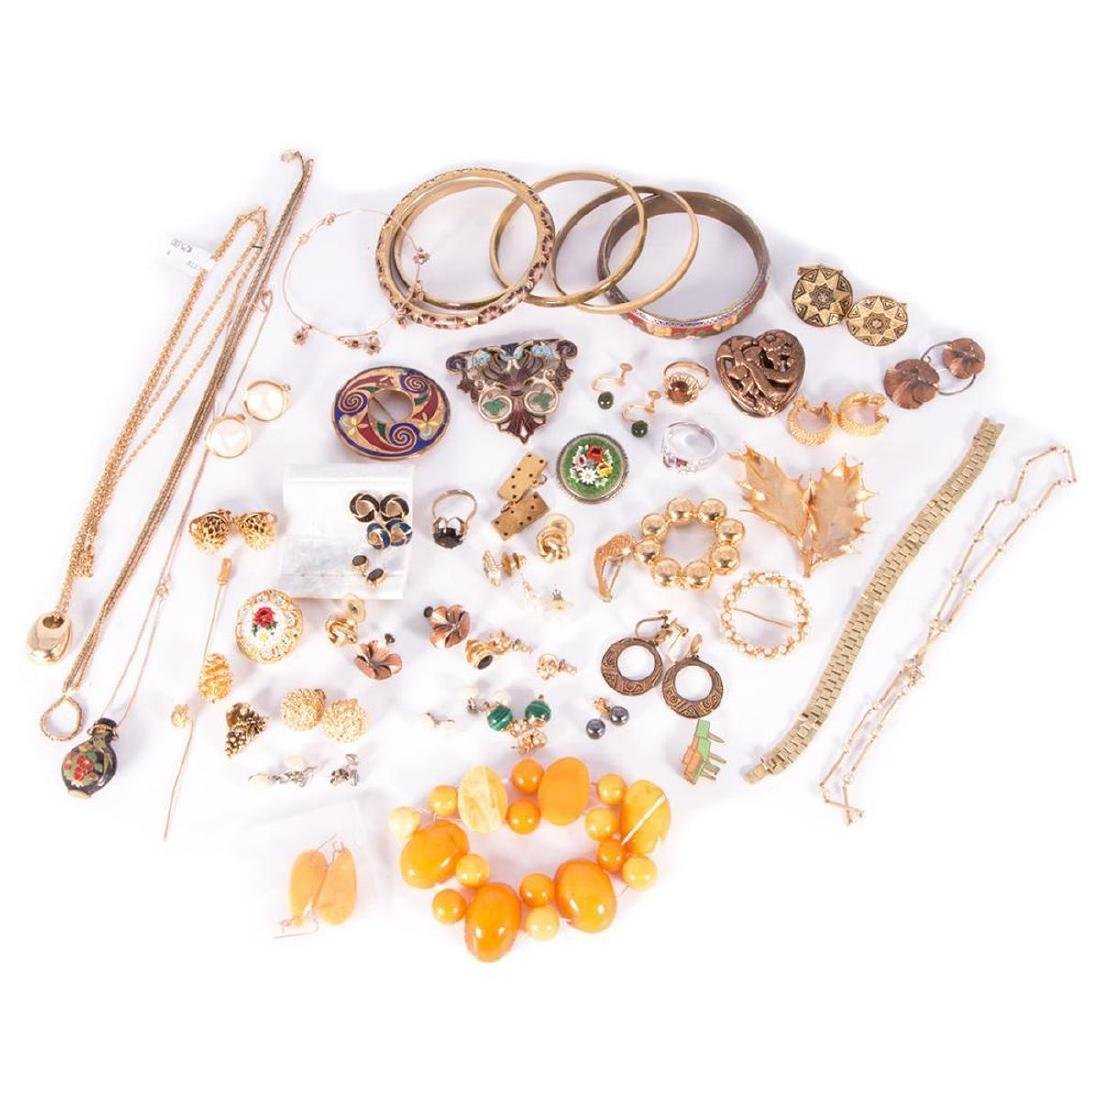 Collection of 60+ pieces of costume jewelry - 2